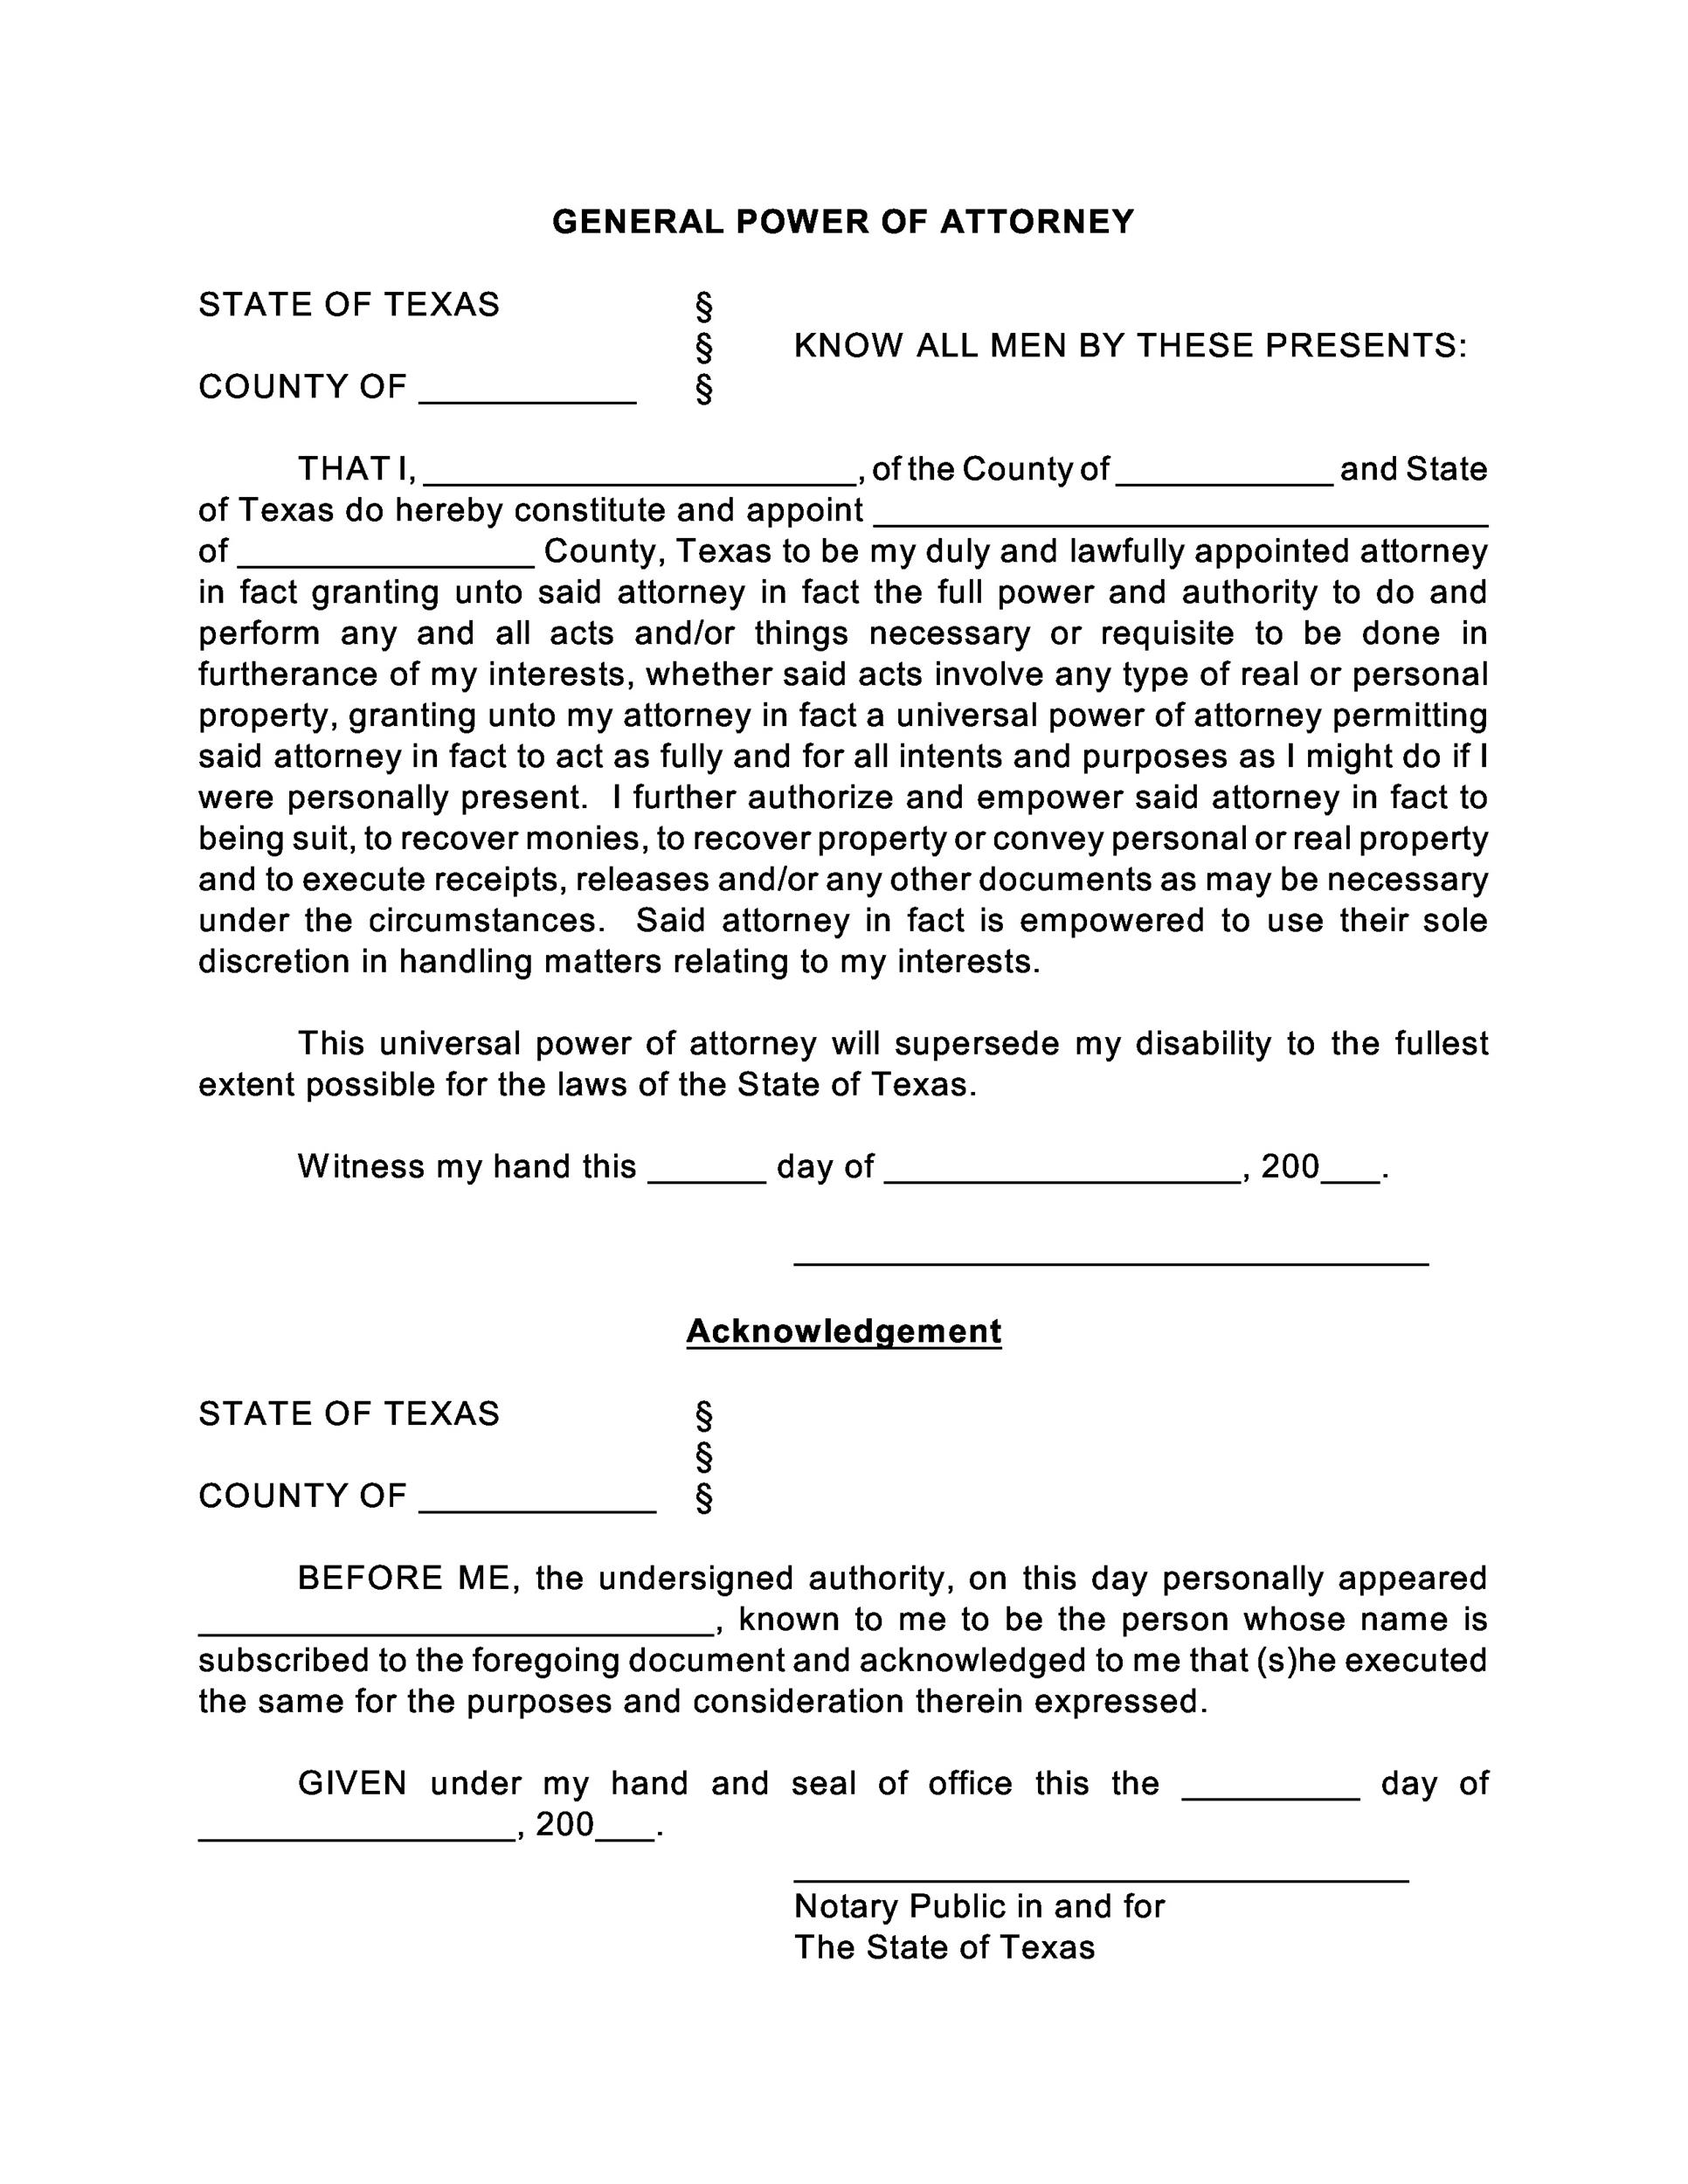 power of attorney form template  poa letter - Unotakzi.brynnagraephoto.com